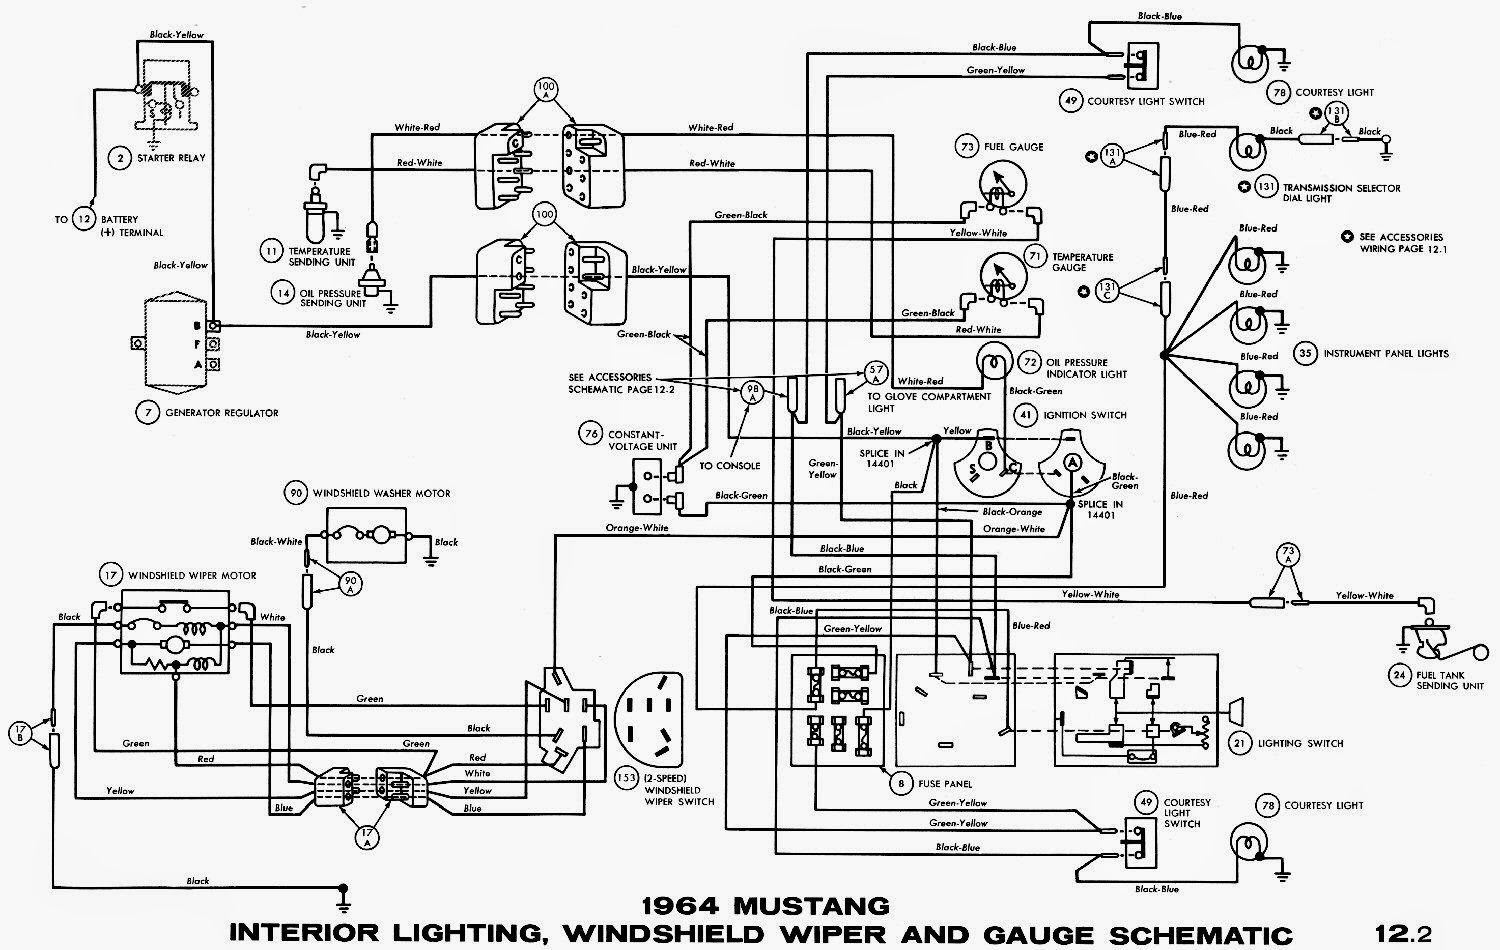 1964 mustang wiring diagrams schematic wiring diagrams. Black Bedroom Furniture Sets. Home Design Ideas